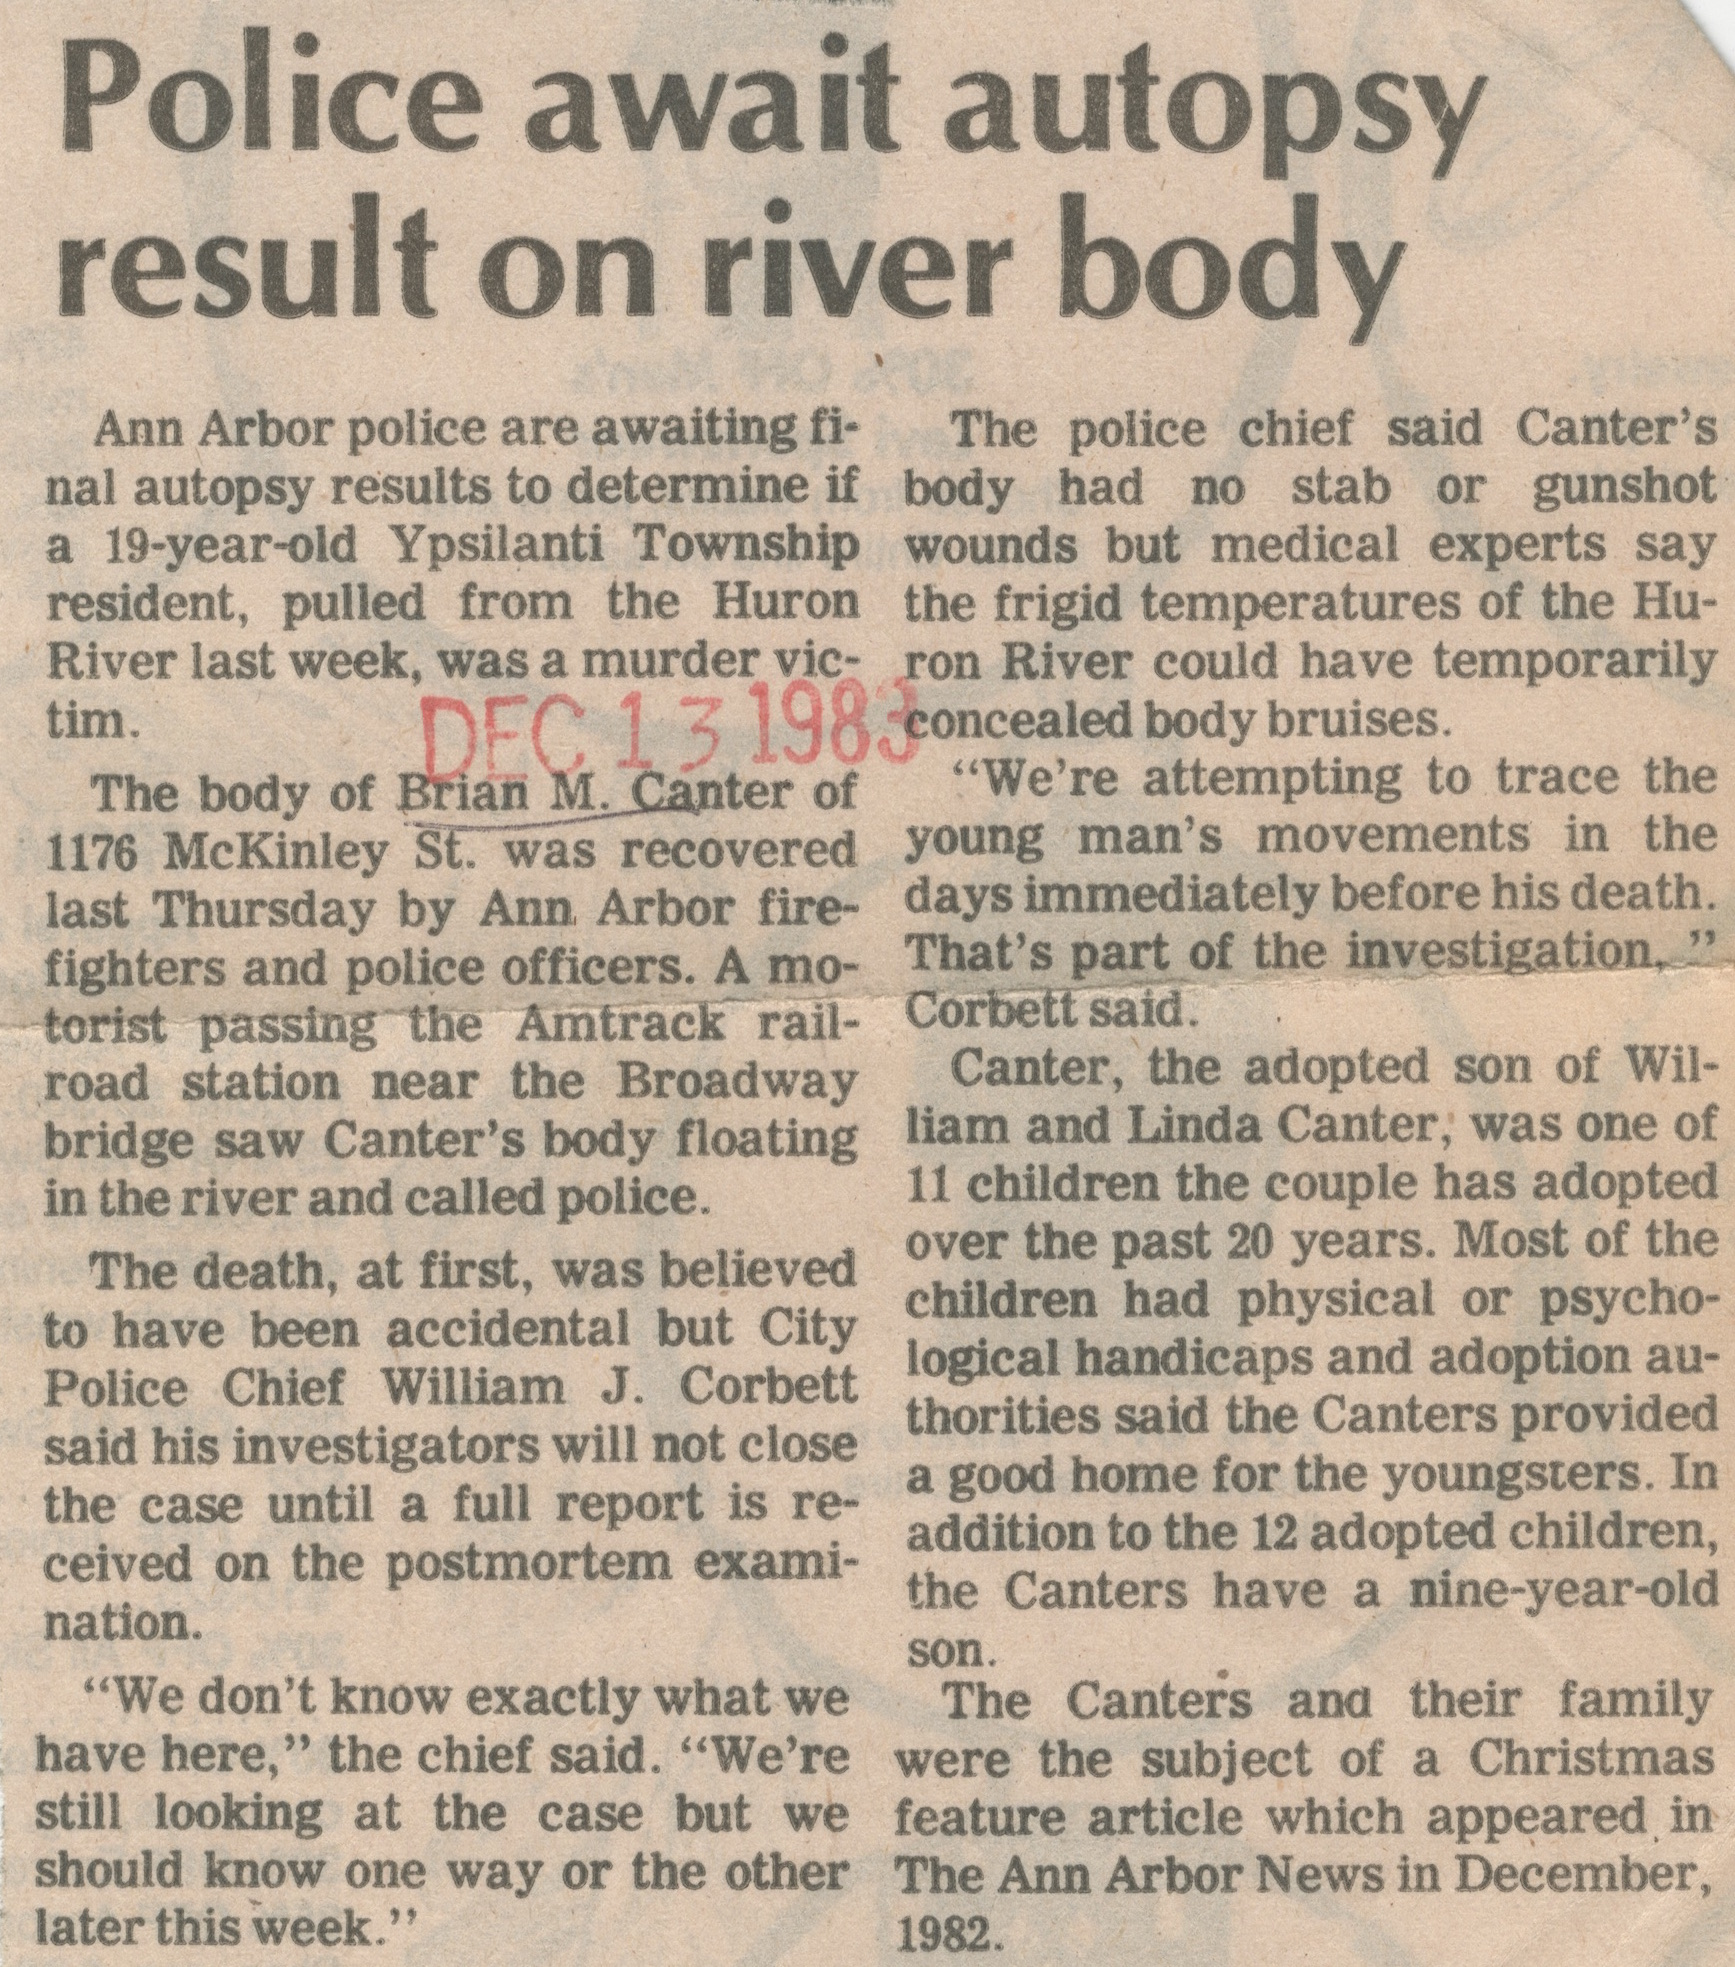 Police Await Autopsy Result On River Body image